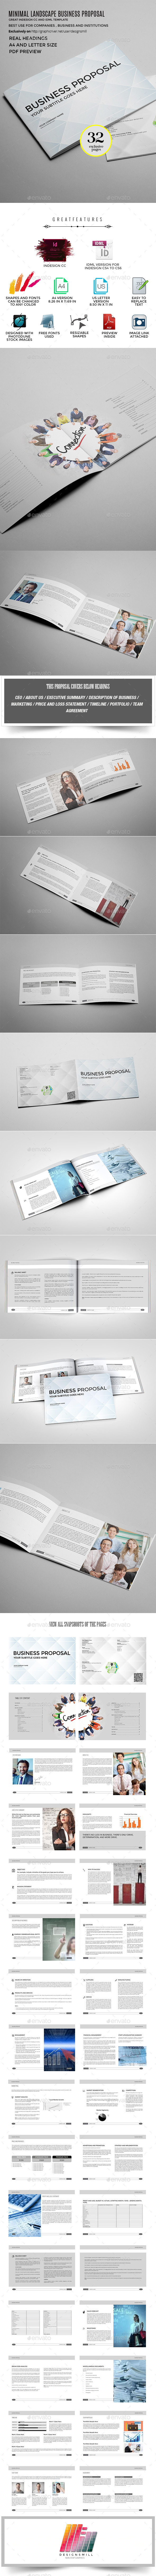 Simple and Minimal Proposal Template - Proposals & Invoices Stationery